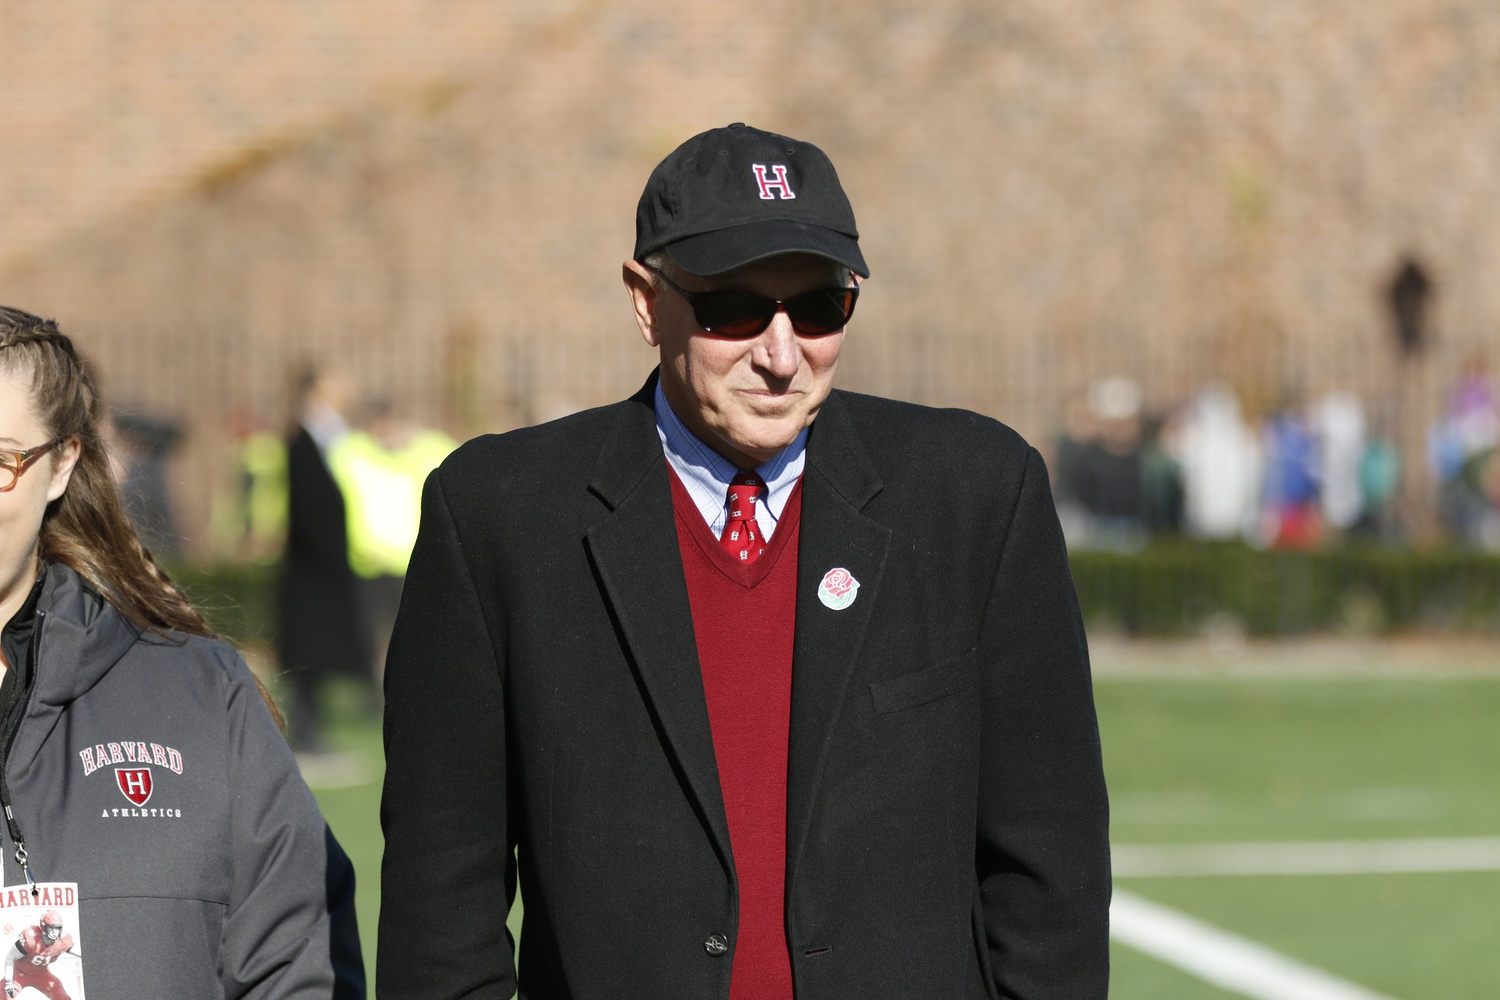 Athletics Director Robert L. Scalise announced in October 2019 his intent to retire in June 2020, after nearly 50 years at Harvard serving in a variety of roles including coach and Business School associate dean.